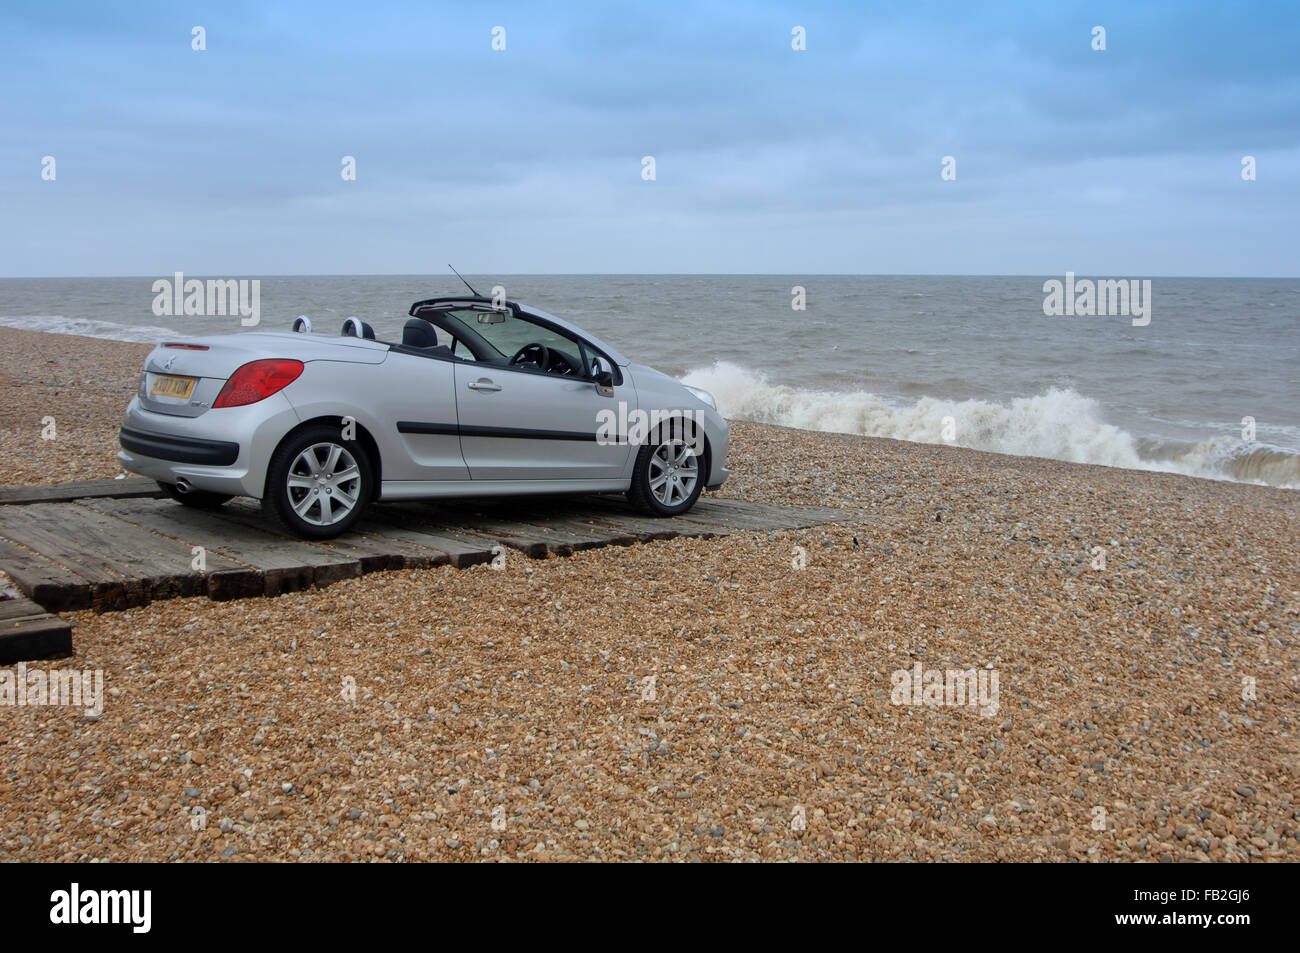 Peugeot 206 CC (Coupe Convertible) open top car with folding metal roof - Stock Image